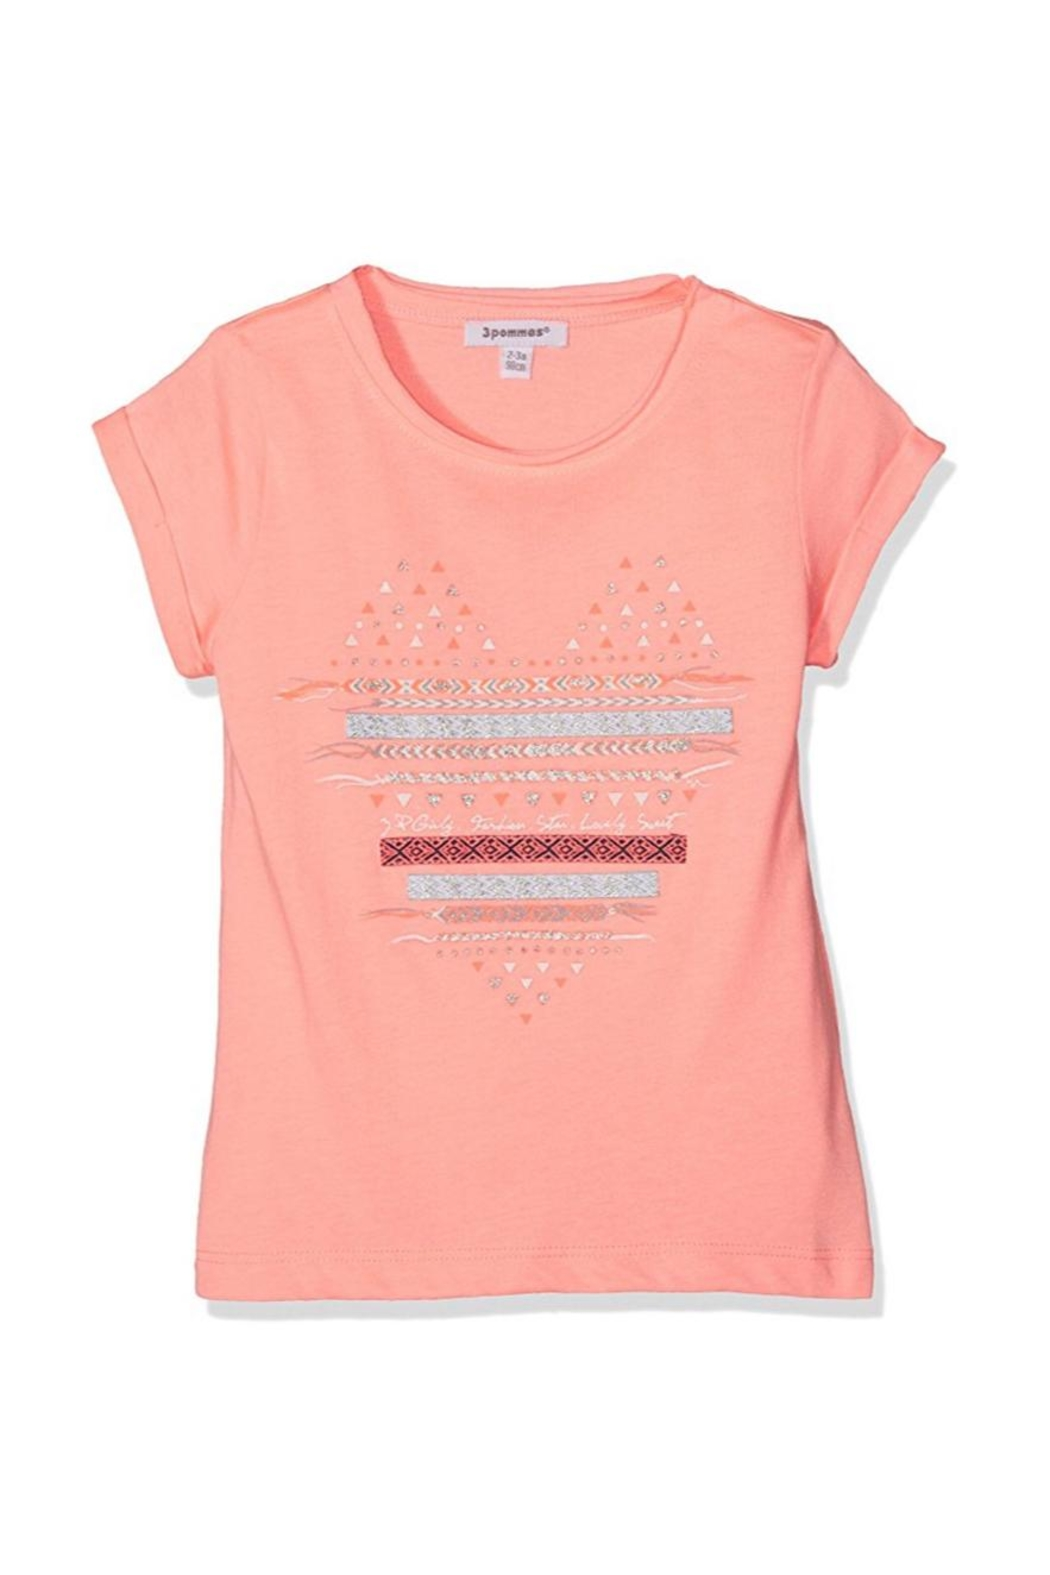 3 Pommes Neon Beach Tee - Front Cropped Image